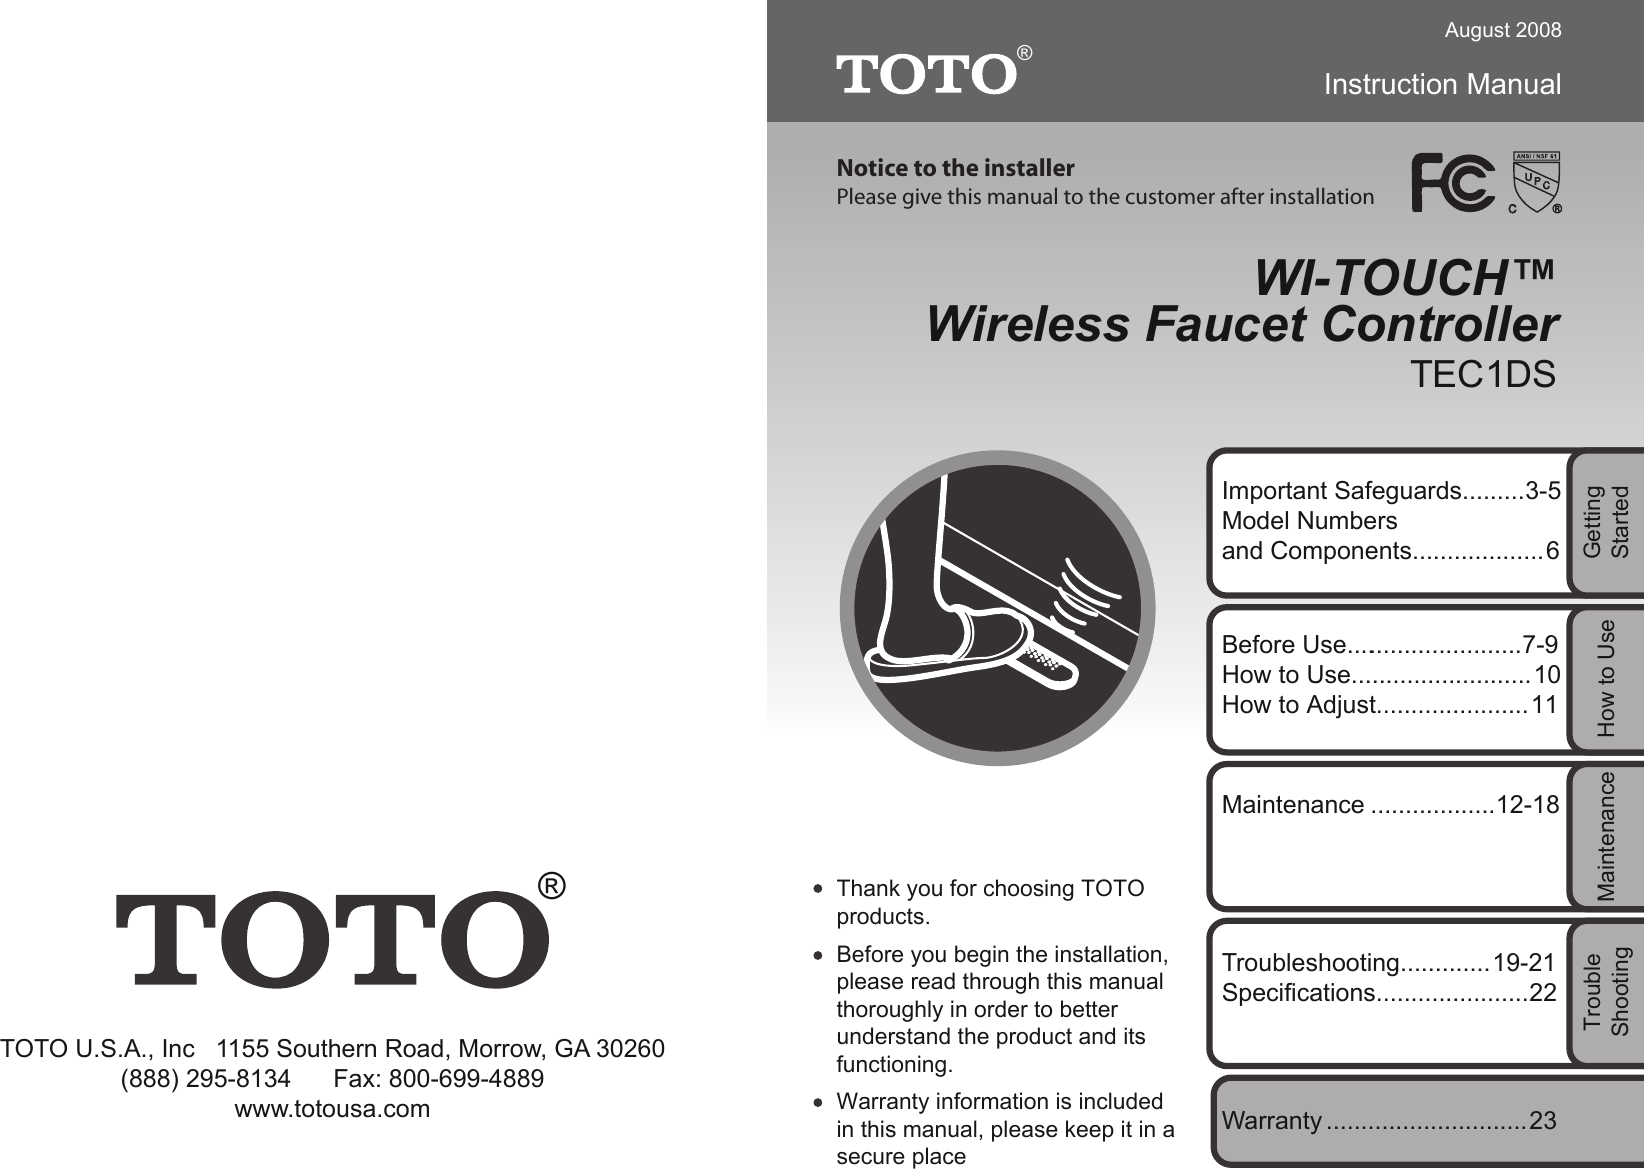 Toto USA TEC1DS Wireless Faucet Controller User Manual TES33 TES34 ...